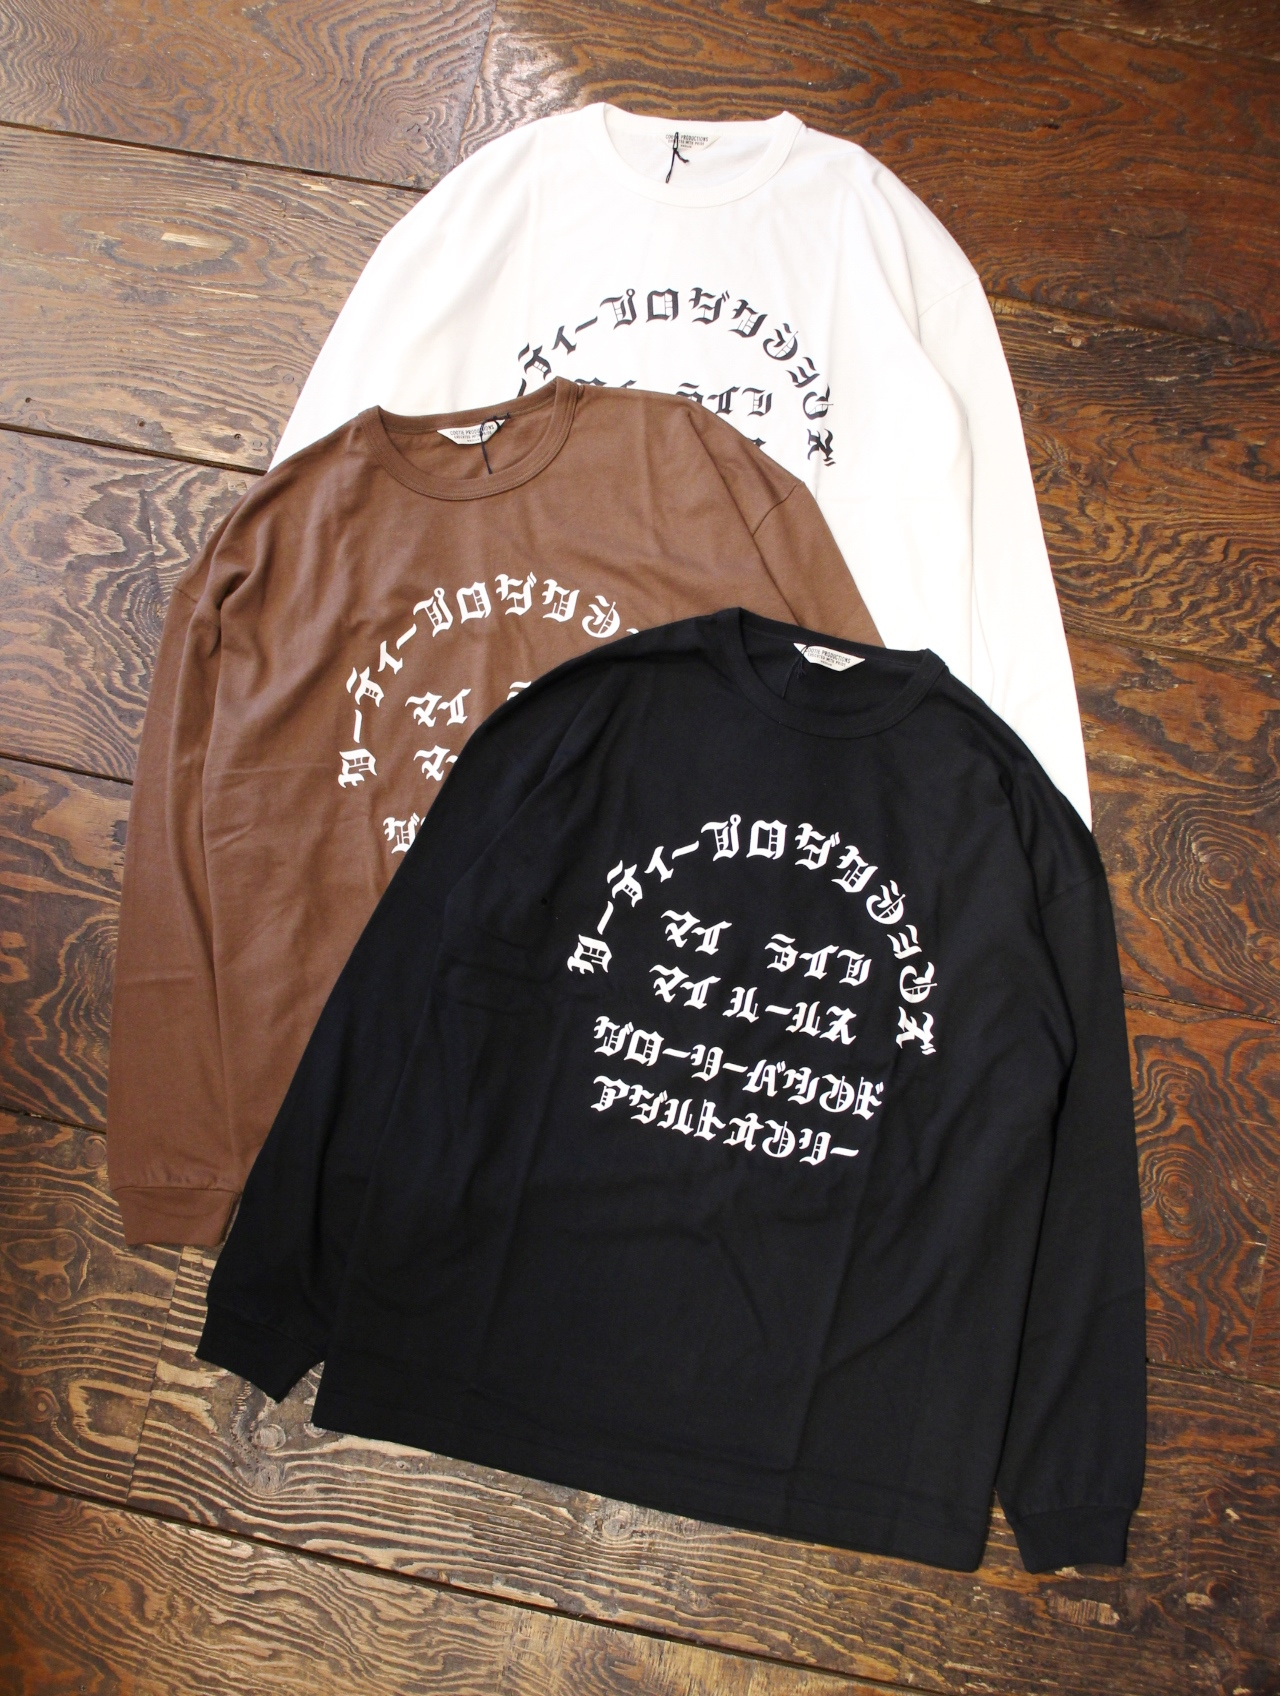 COOTIE  「Print L/S Tee (マイライフマイルールス)」 プリントロンティー